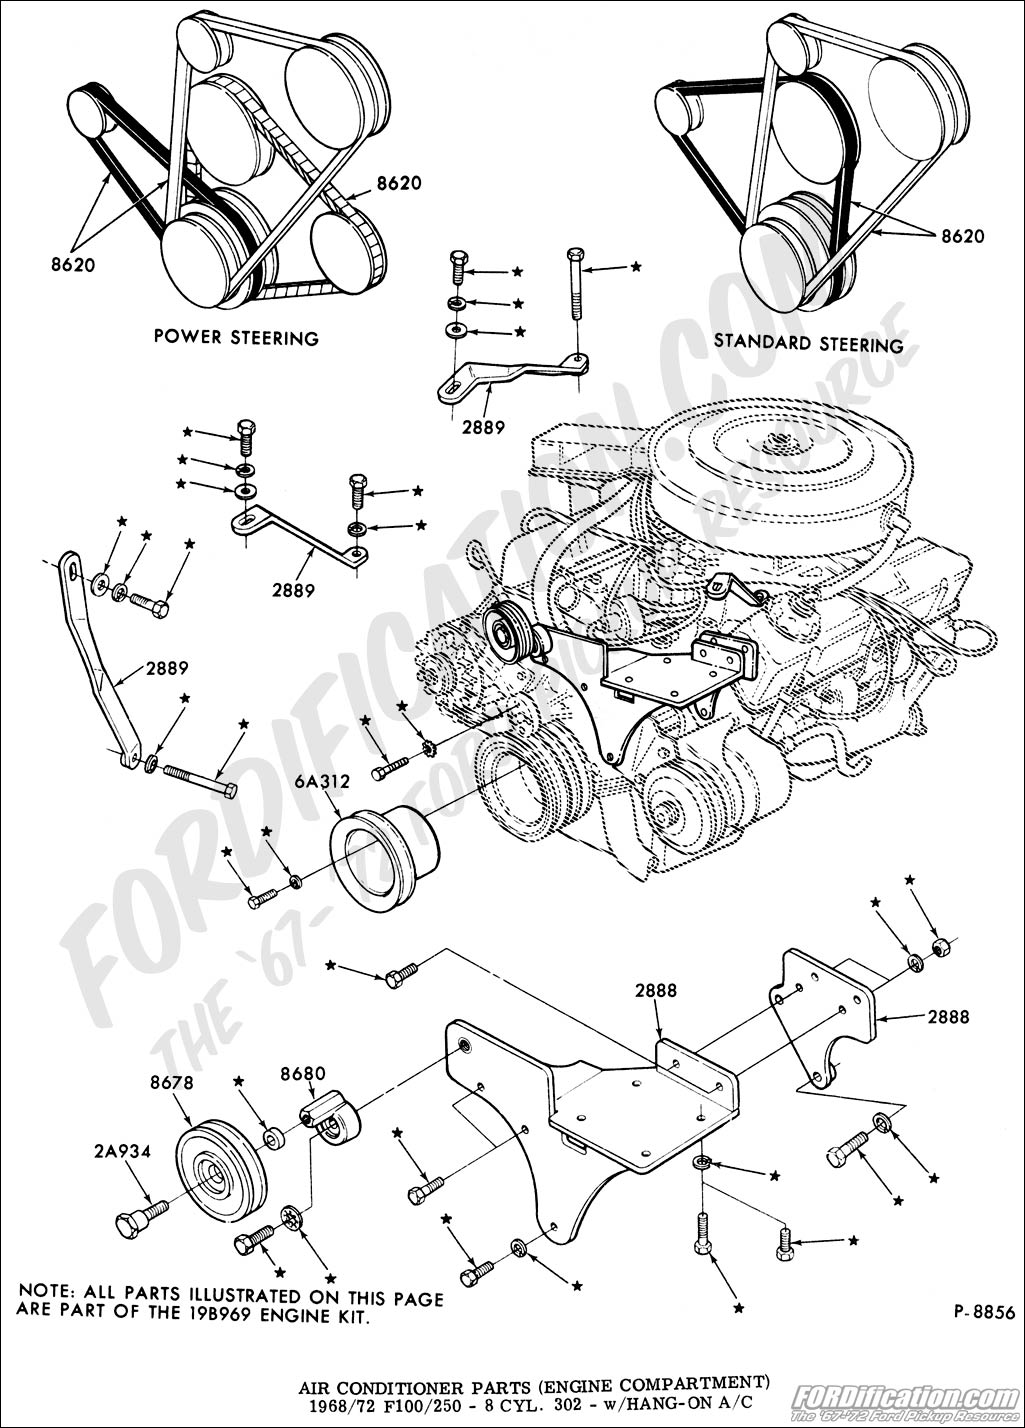 V8 Engine Blueprints